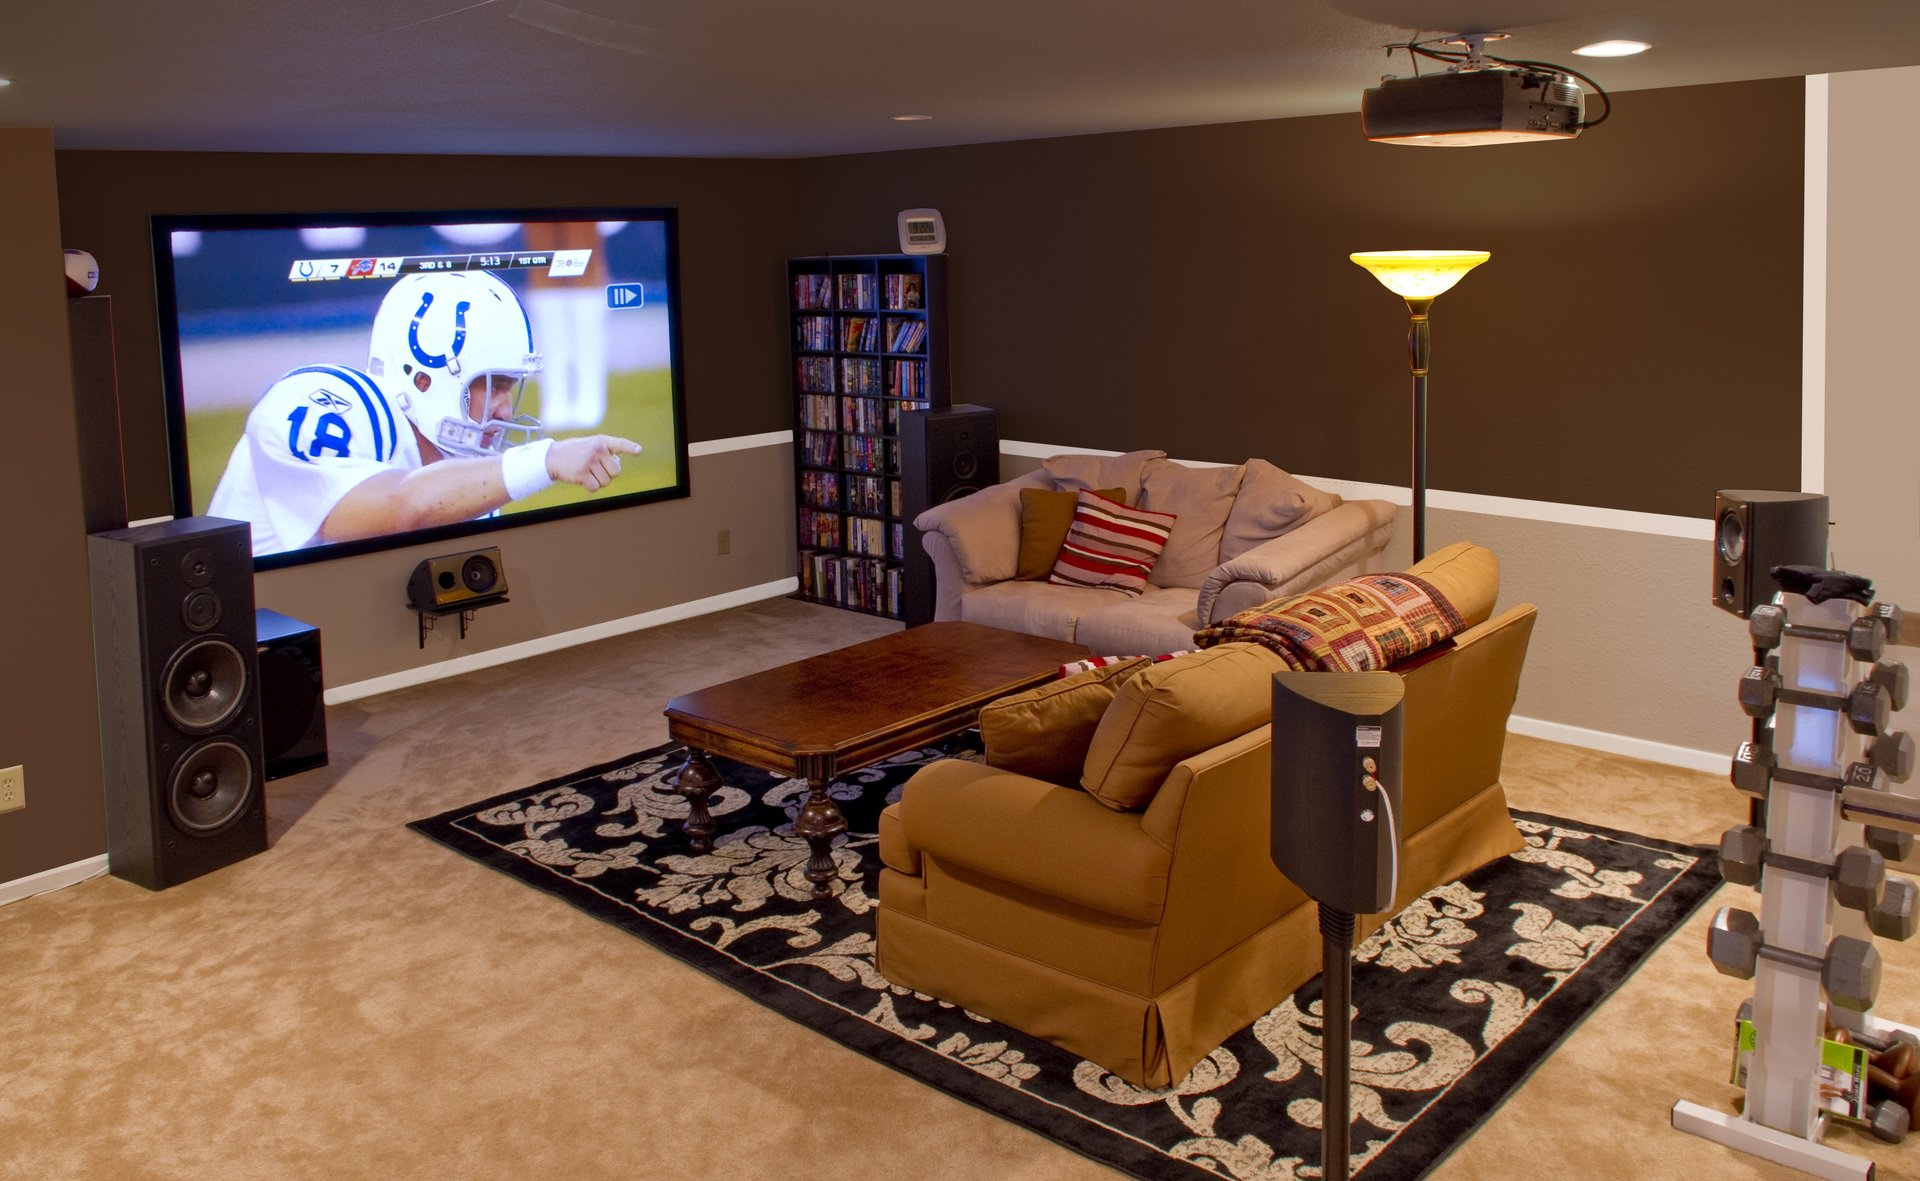 Edgar_in_Indy\'s home theater improvement thread - BEFORE and AFTER ...